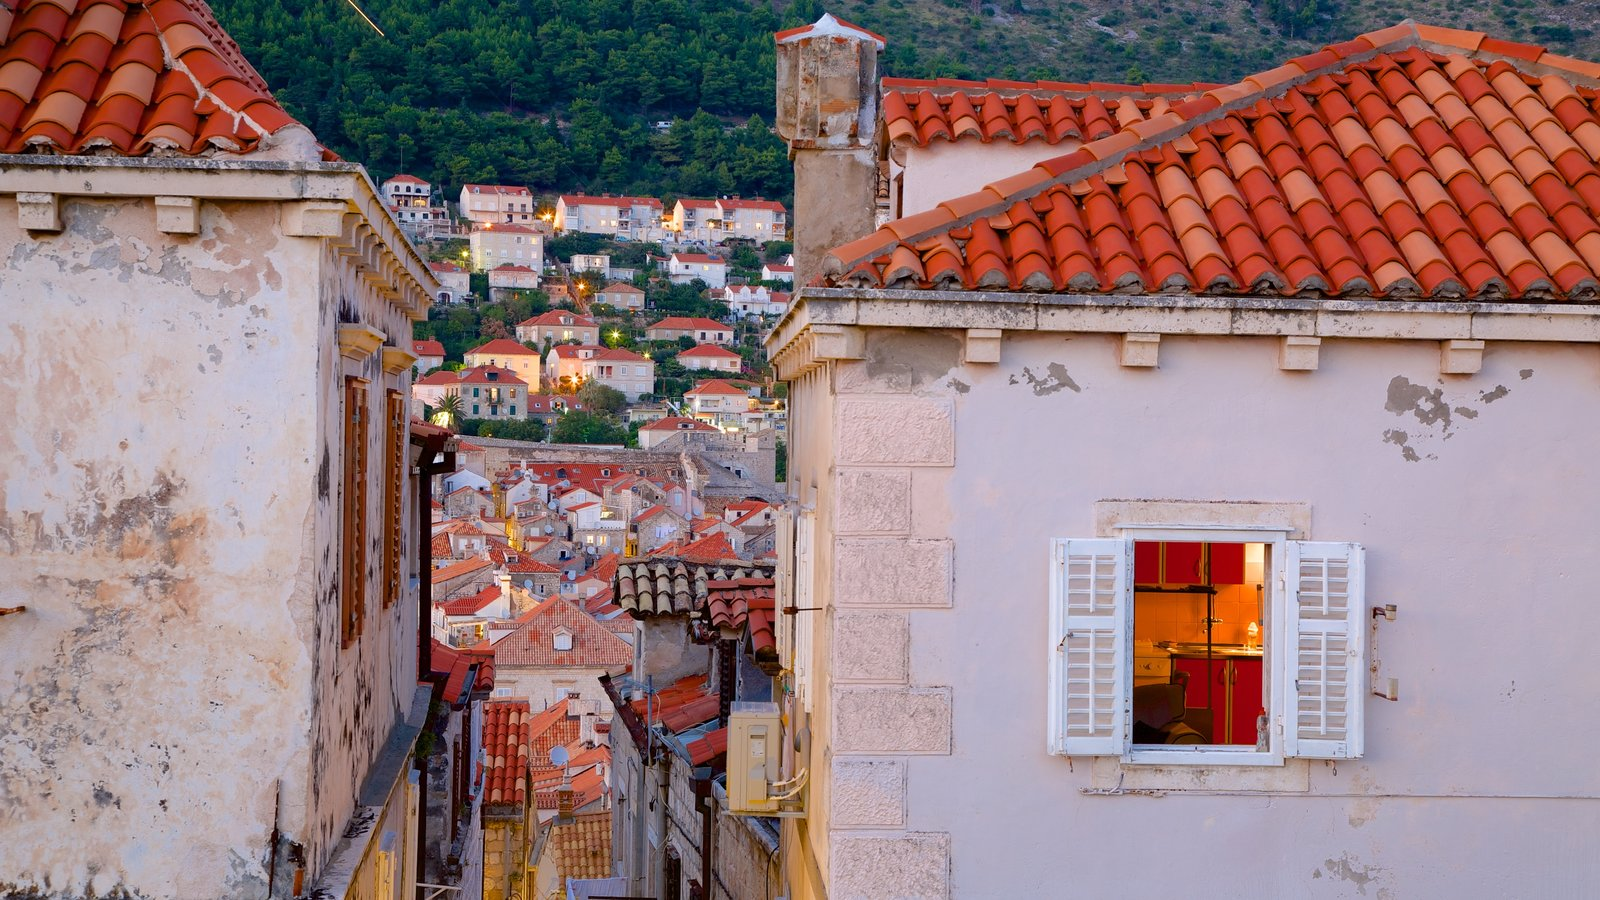 Dubrovnik Old Town showing a city